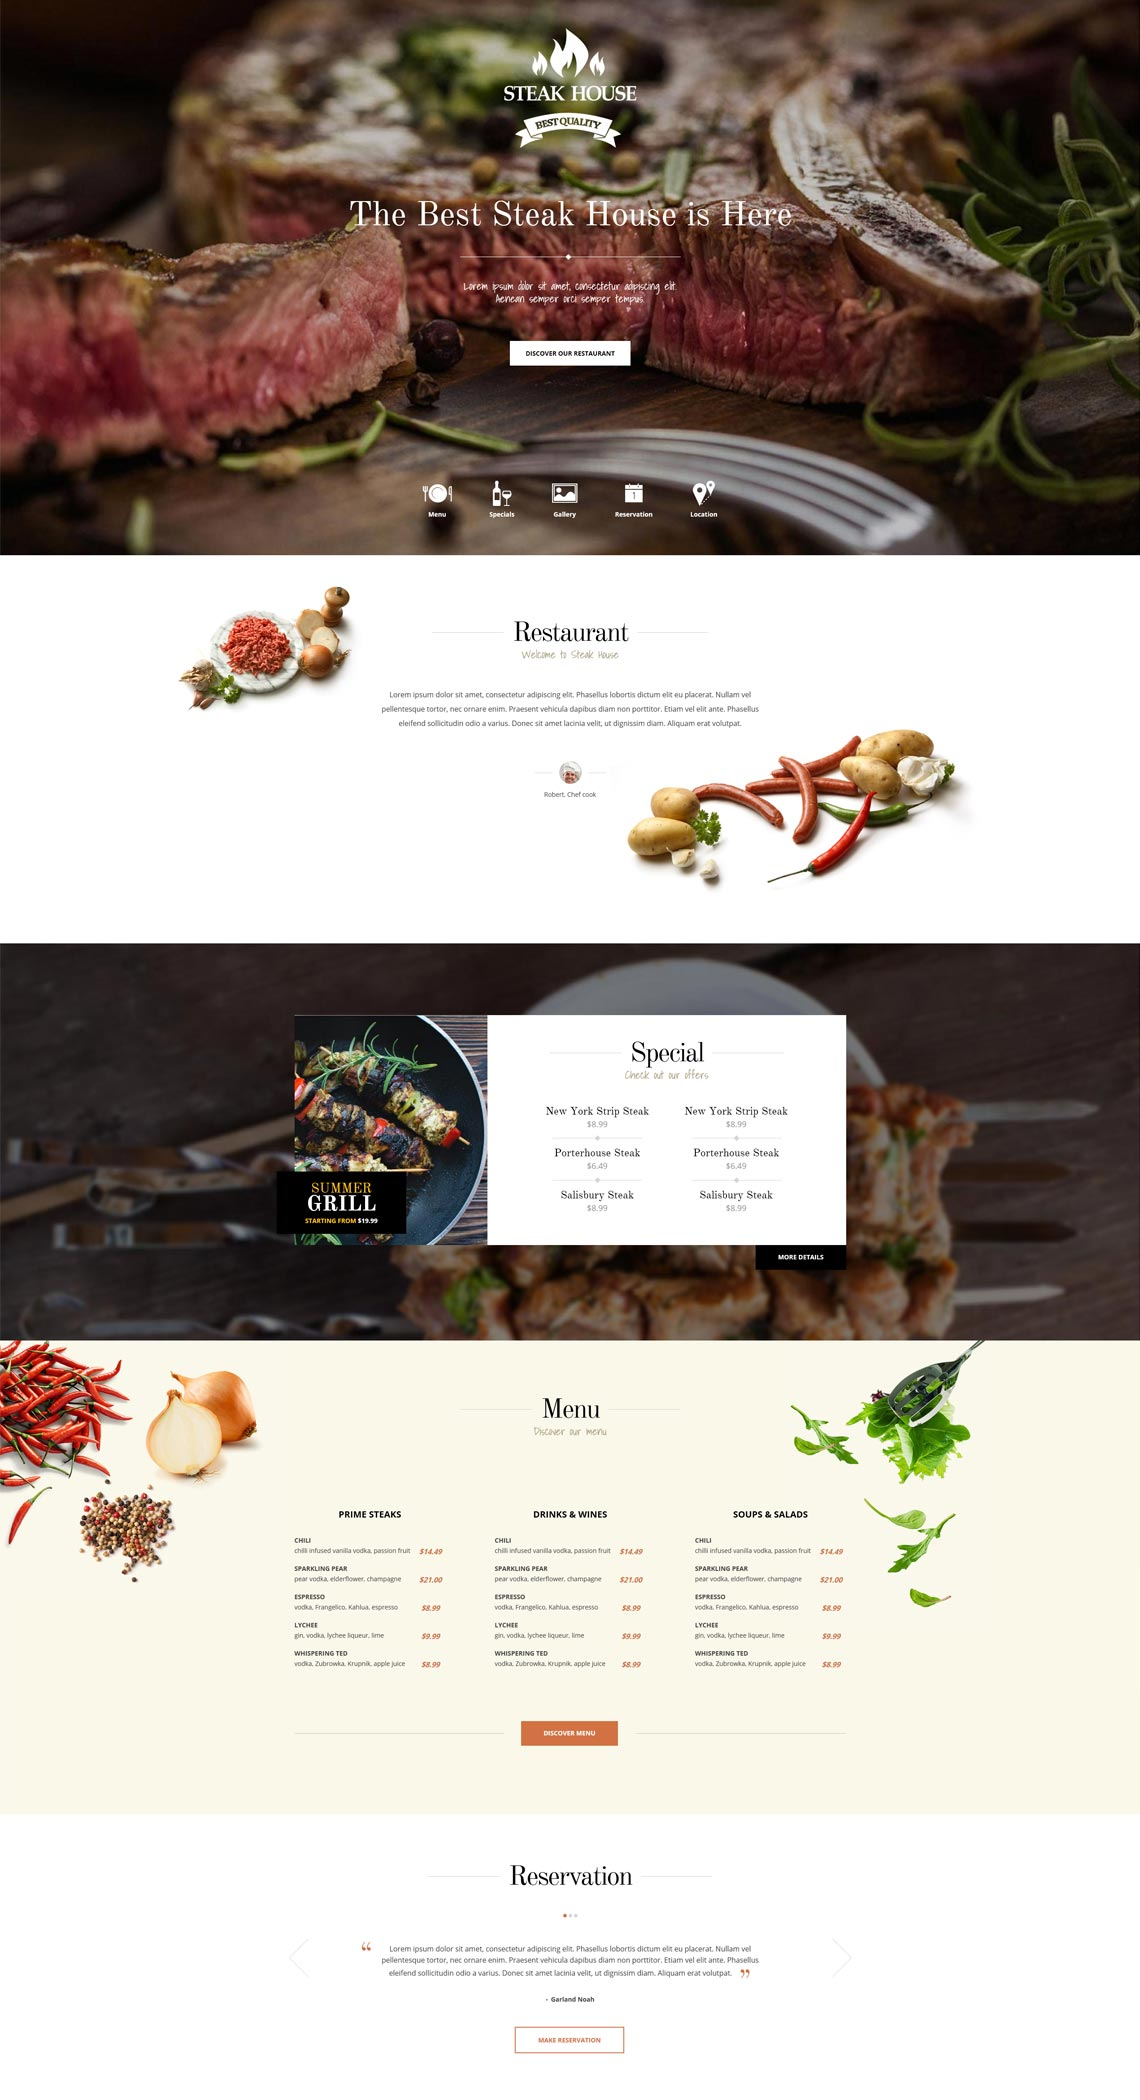 Steak House Restaurant WordPress Theme For Brasserie Bar Websites - Restaurant template wordpress